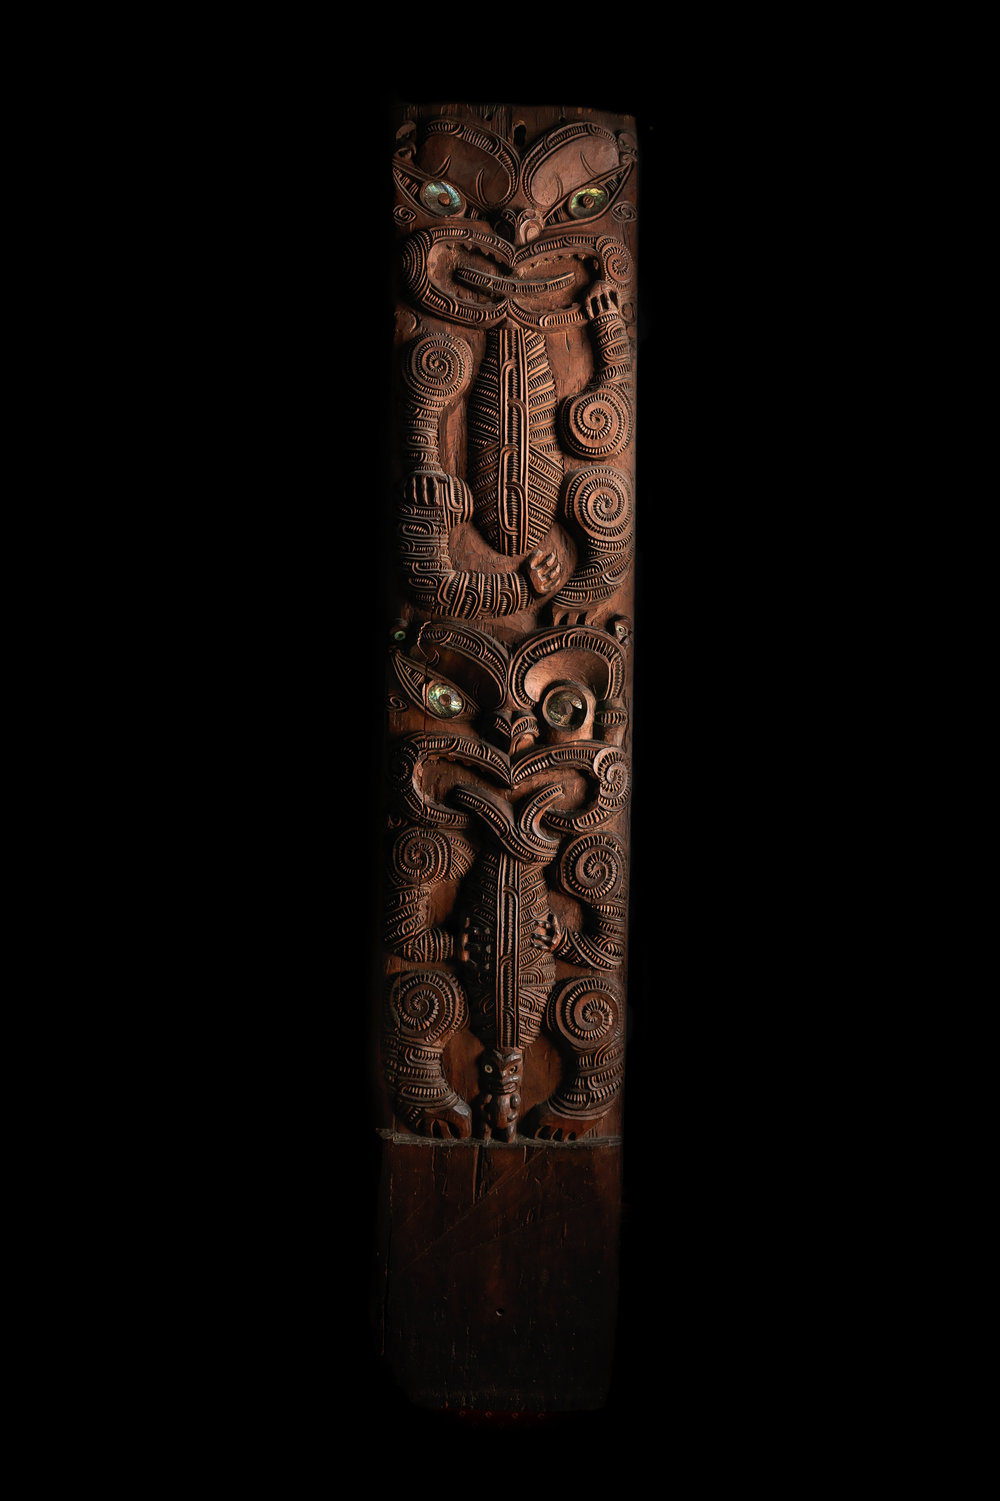 Poupou—wall panel from a Māori wharenui (ancestral community meeting house) 'Heretaunga', Pākōwhai, Hawke's Bay, New Zealand, 1870s  Ngāti Porou craftsmen, commissioned by tribal leader Karaitiana Takamoana (Ngāti Kahungunu) Carved wood, paua shell South Australian Museum, Adelaide